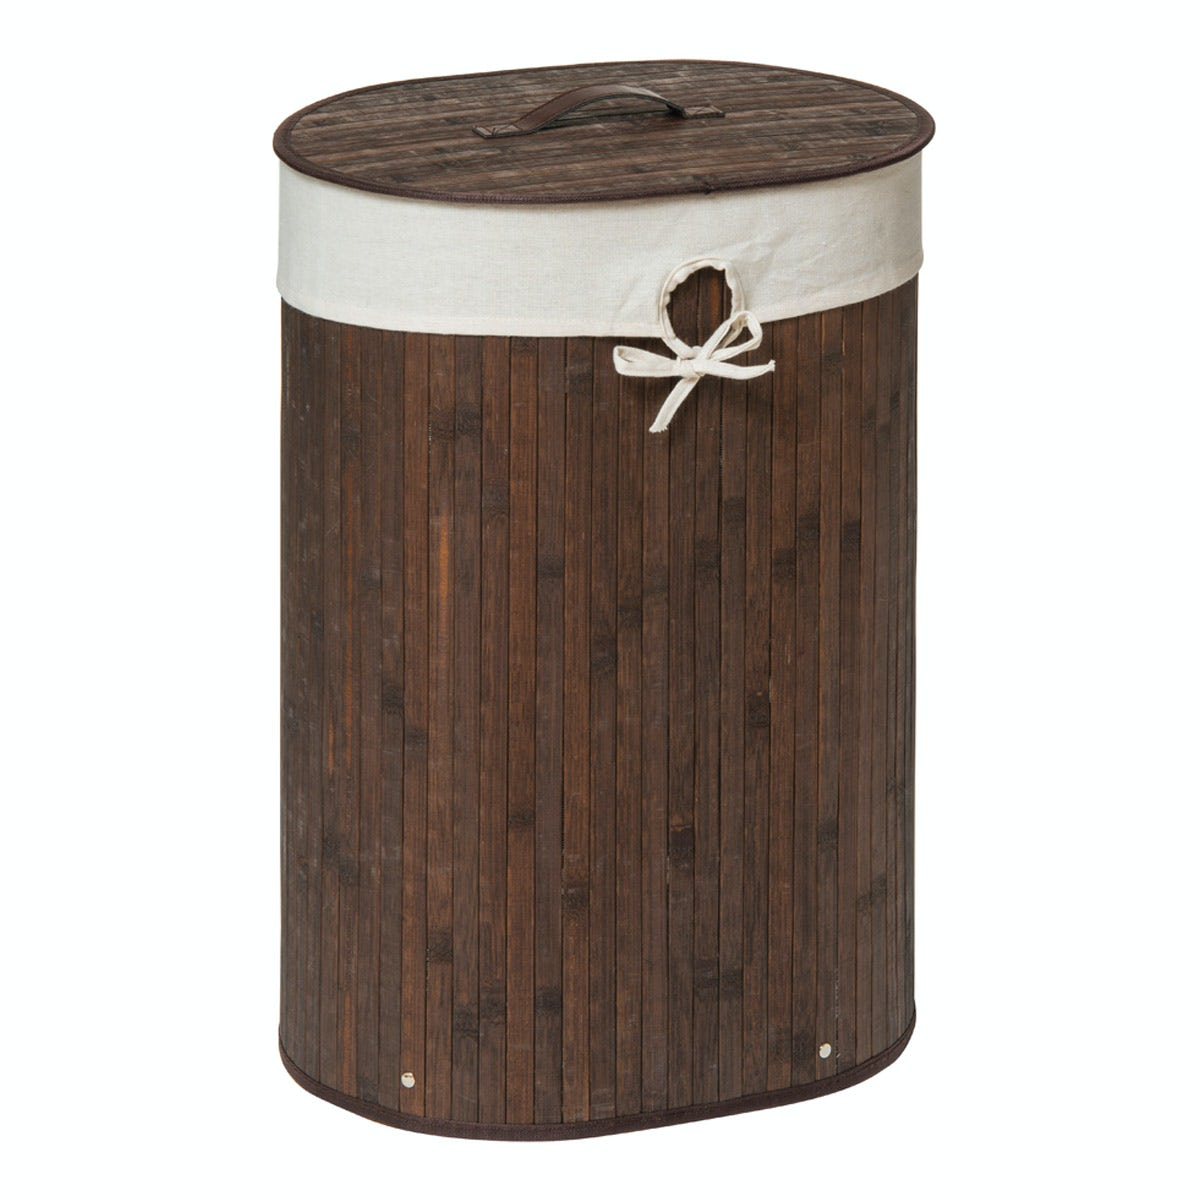 new accessories/laundry basket